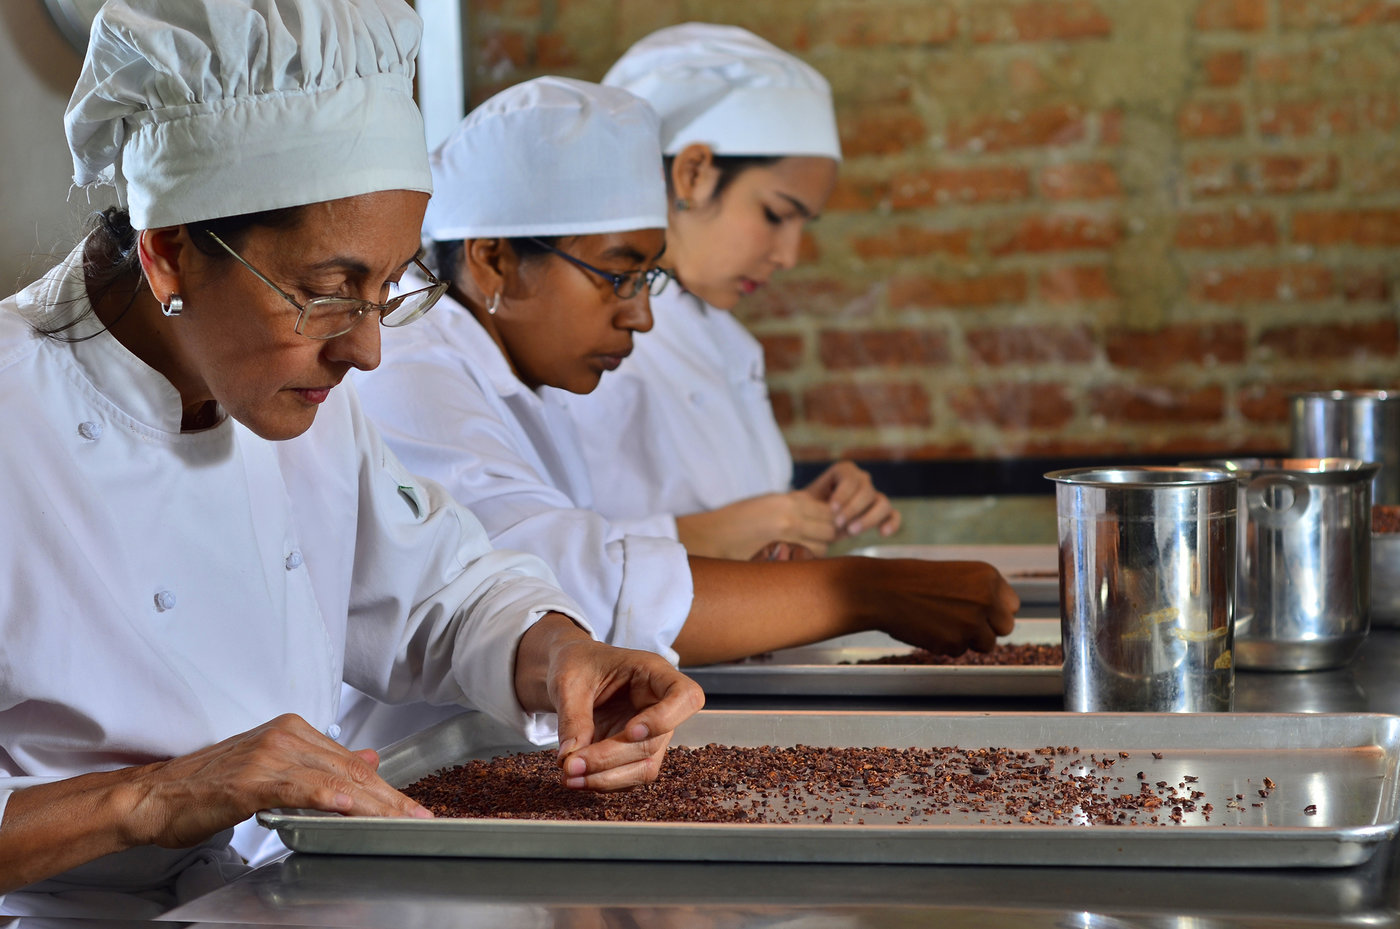 Entrepreneurs sort cocoa beans on a tray at Cacao de Origen, a school founded by Maria Di Giacobbe to train Venezuelan women in the making of premium chocolate. Courtesy Cacao de Origen.